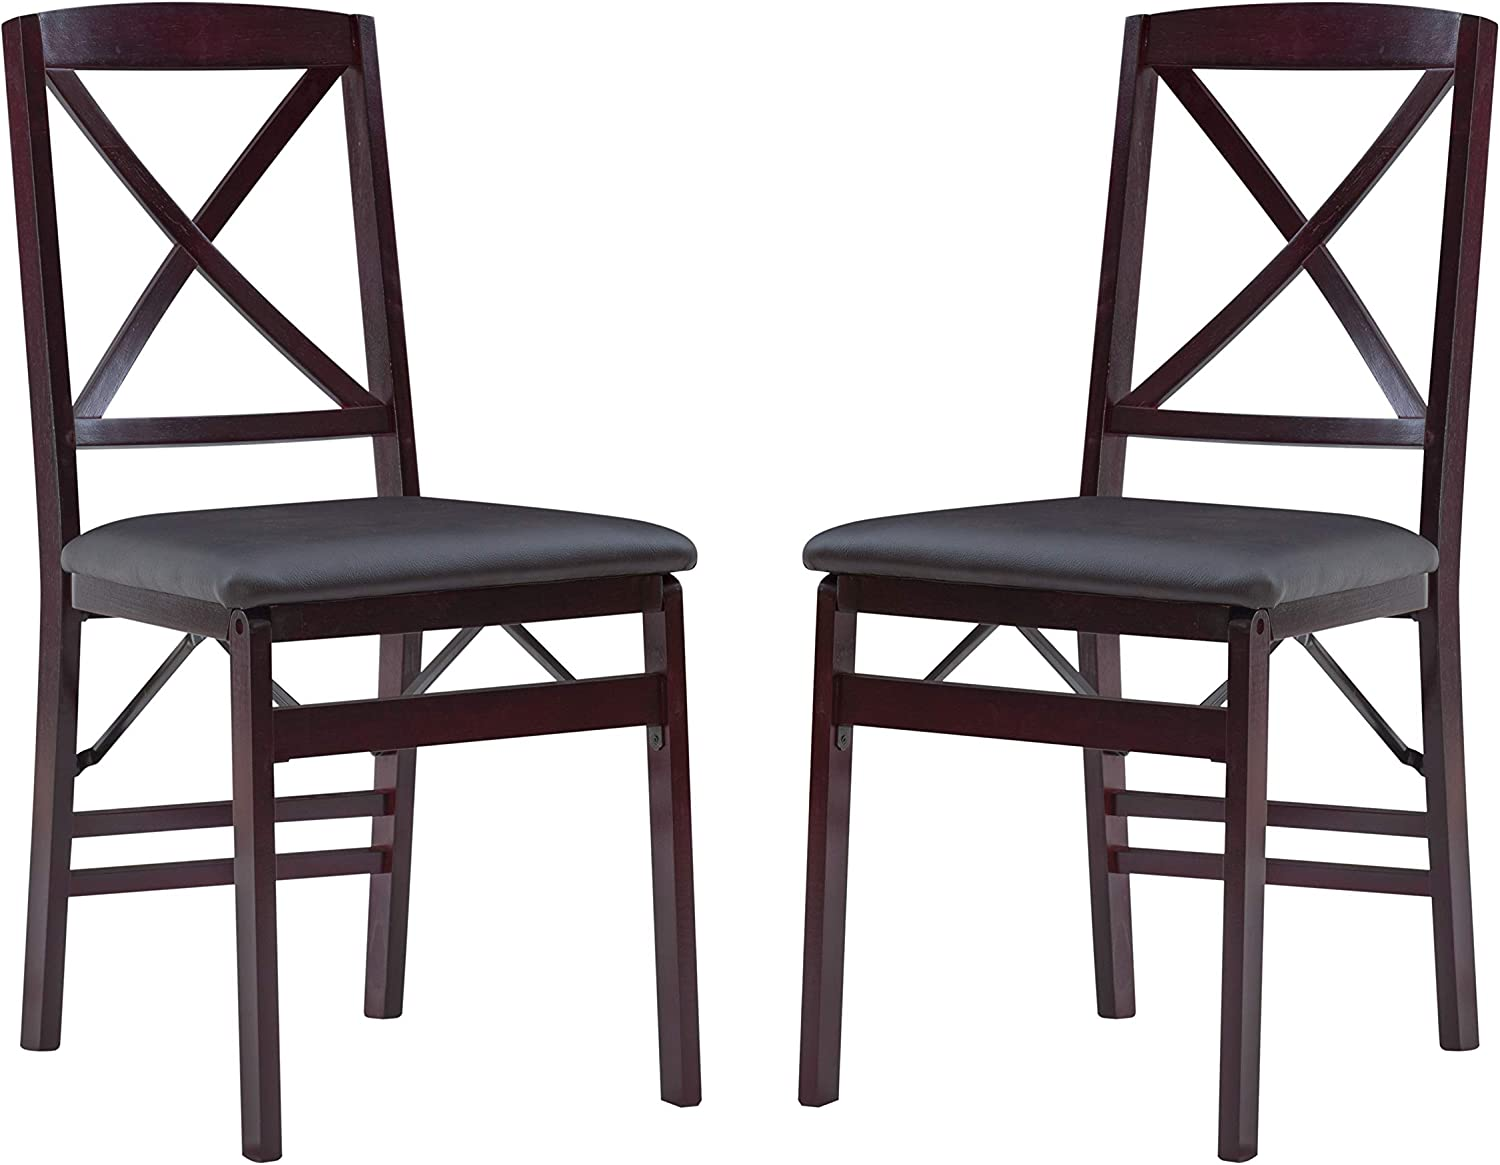 Linon Triena X Back Folding Set Chair 2 of New Max 89% OFF Free Shipping